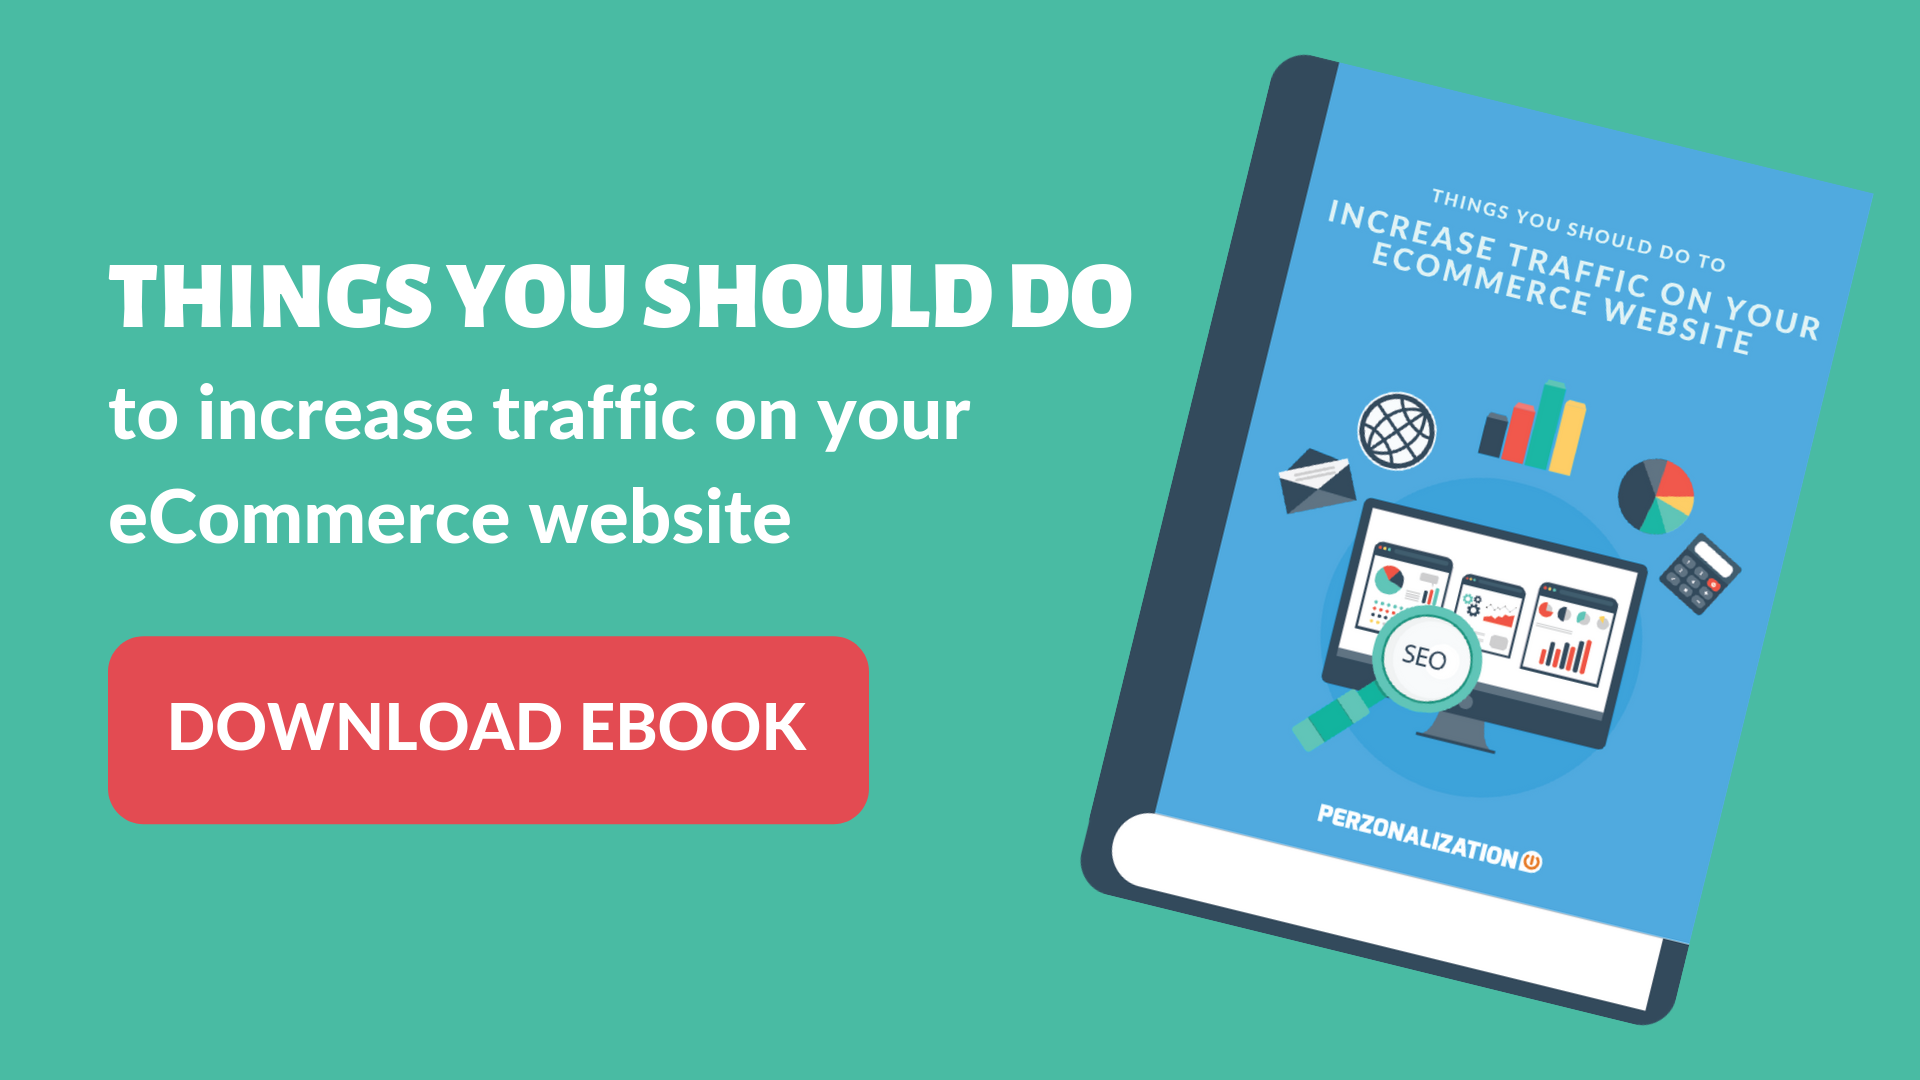 Download free ebook: Things you should do to increase traffic on your eCommerce website